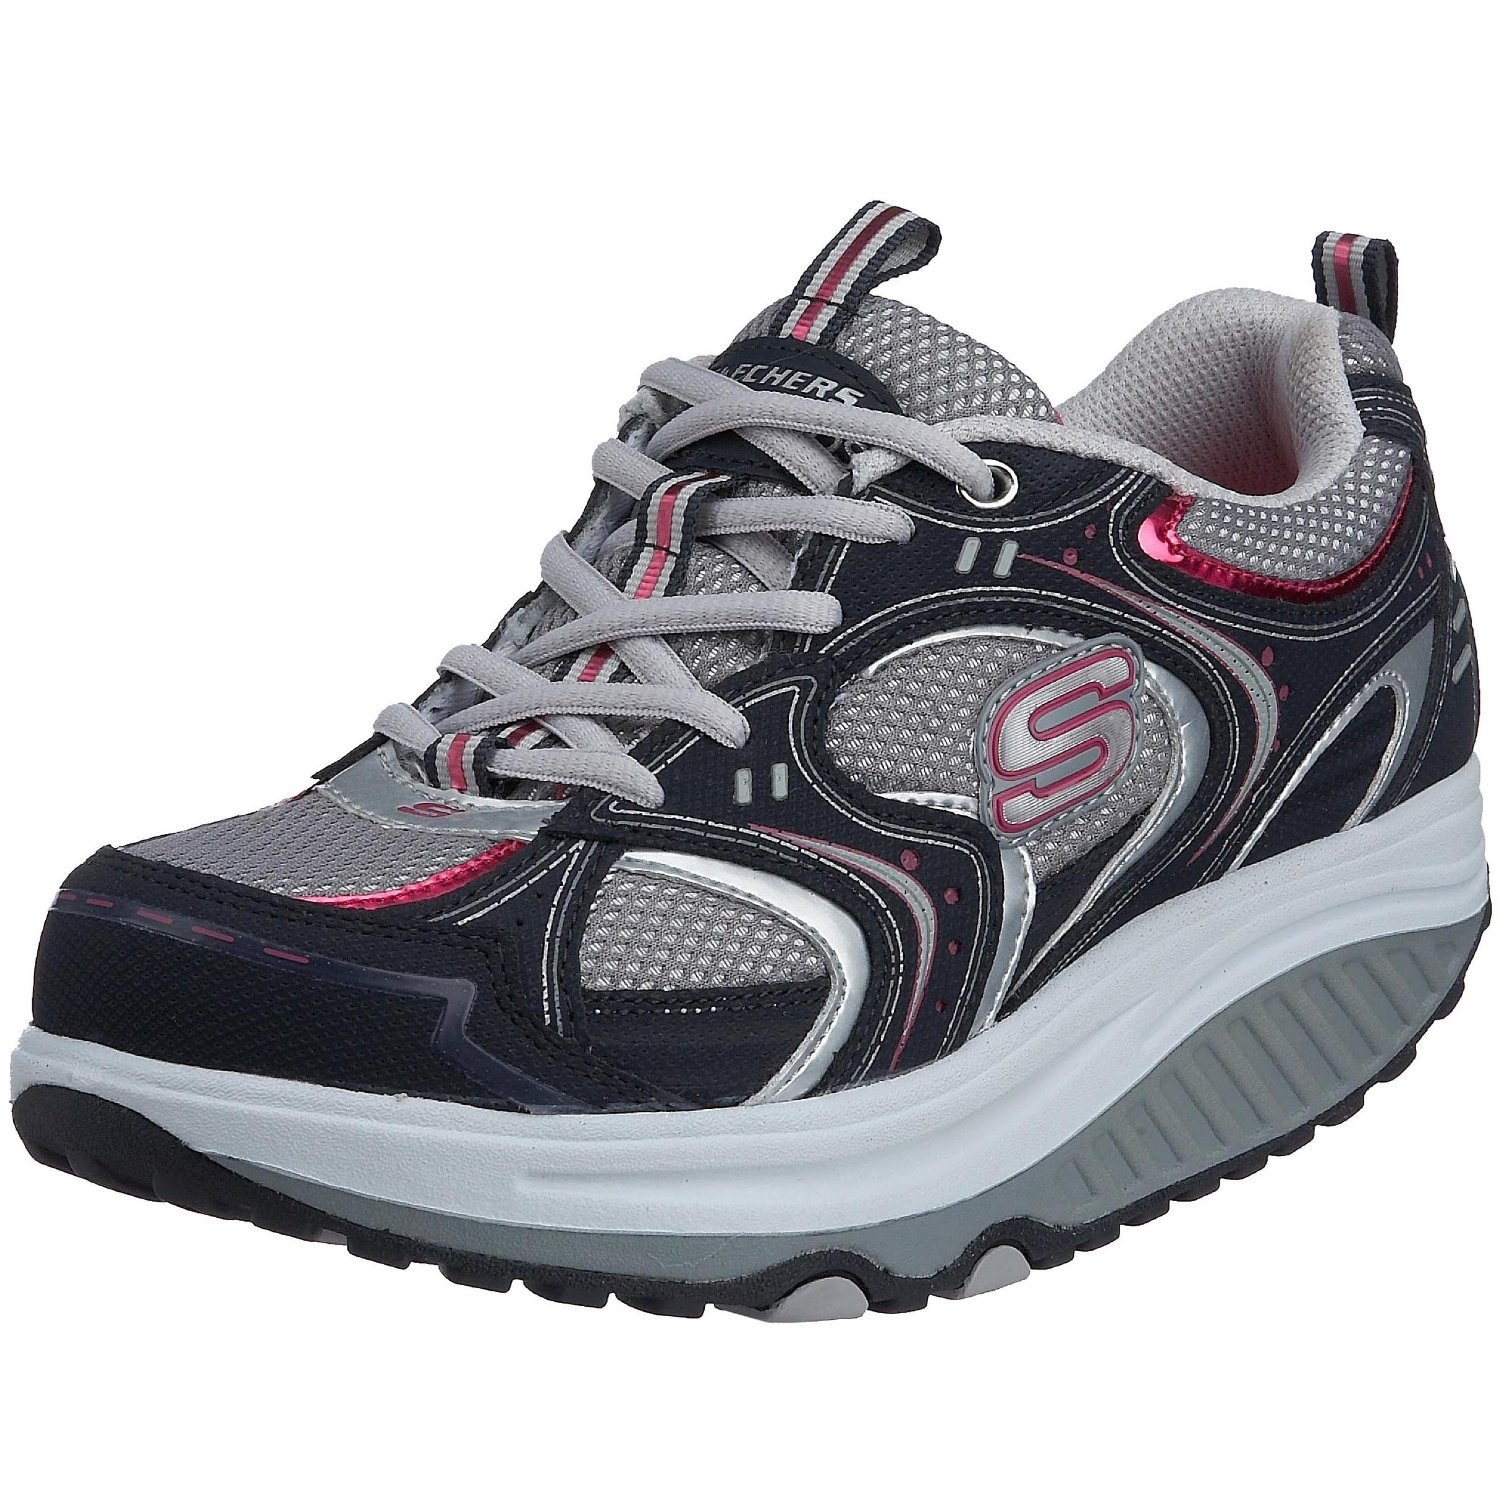 skechers women 39 s shape ups navy action packed trainers ebay. Black Bedroom Furniture Sets. Home Design Ideas